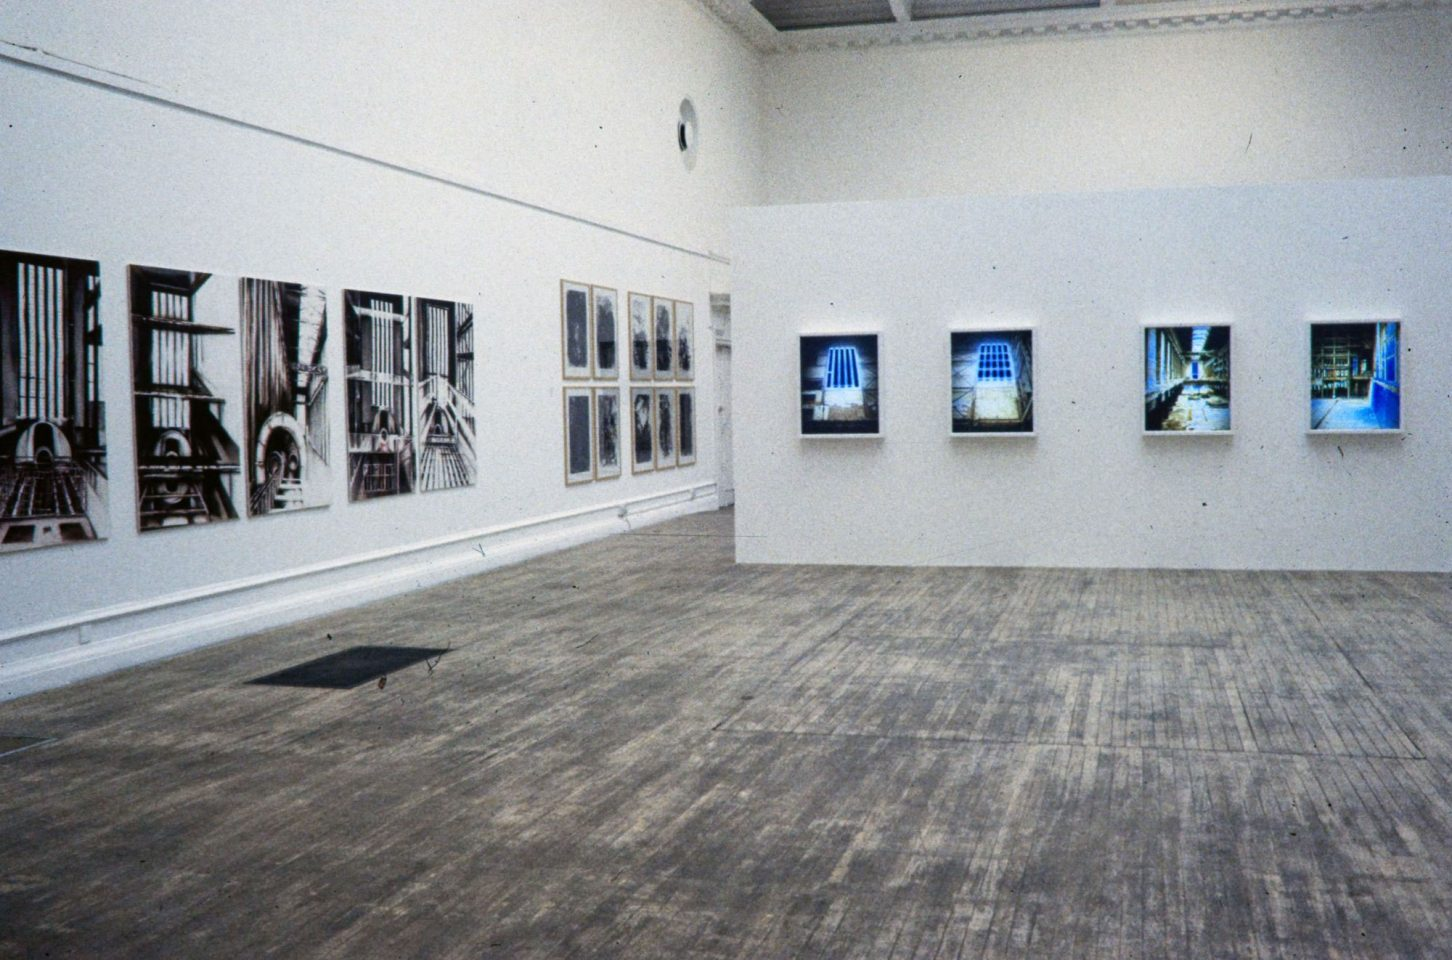 Installation view from Inside Bankside featuring work by Dennis Creffield, Anthony Eyton, Deanna Petherbridge, Terry Smith, Thomas Struth, Catherine Yass.